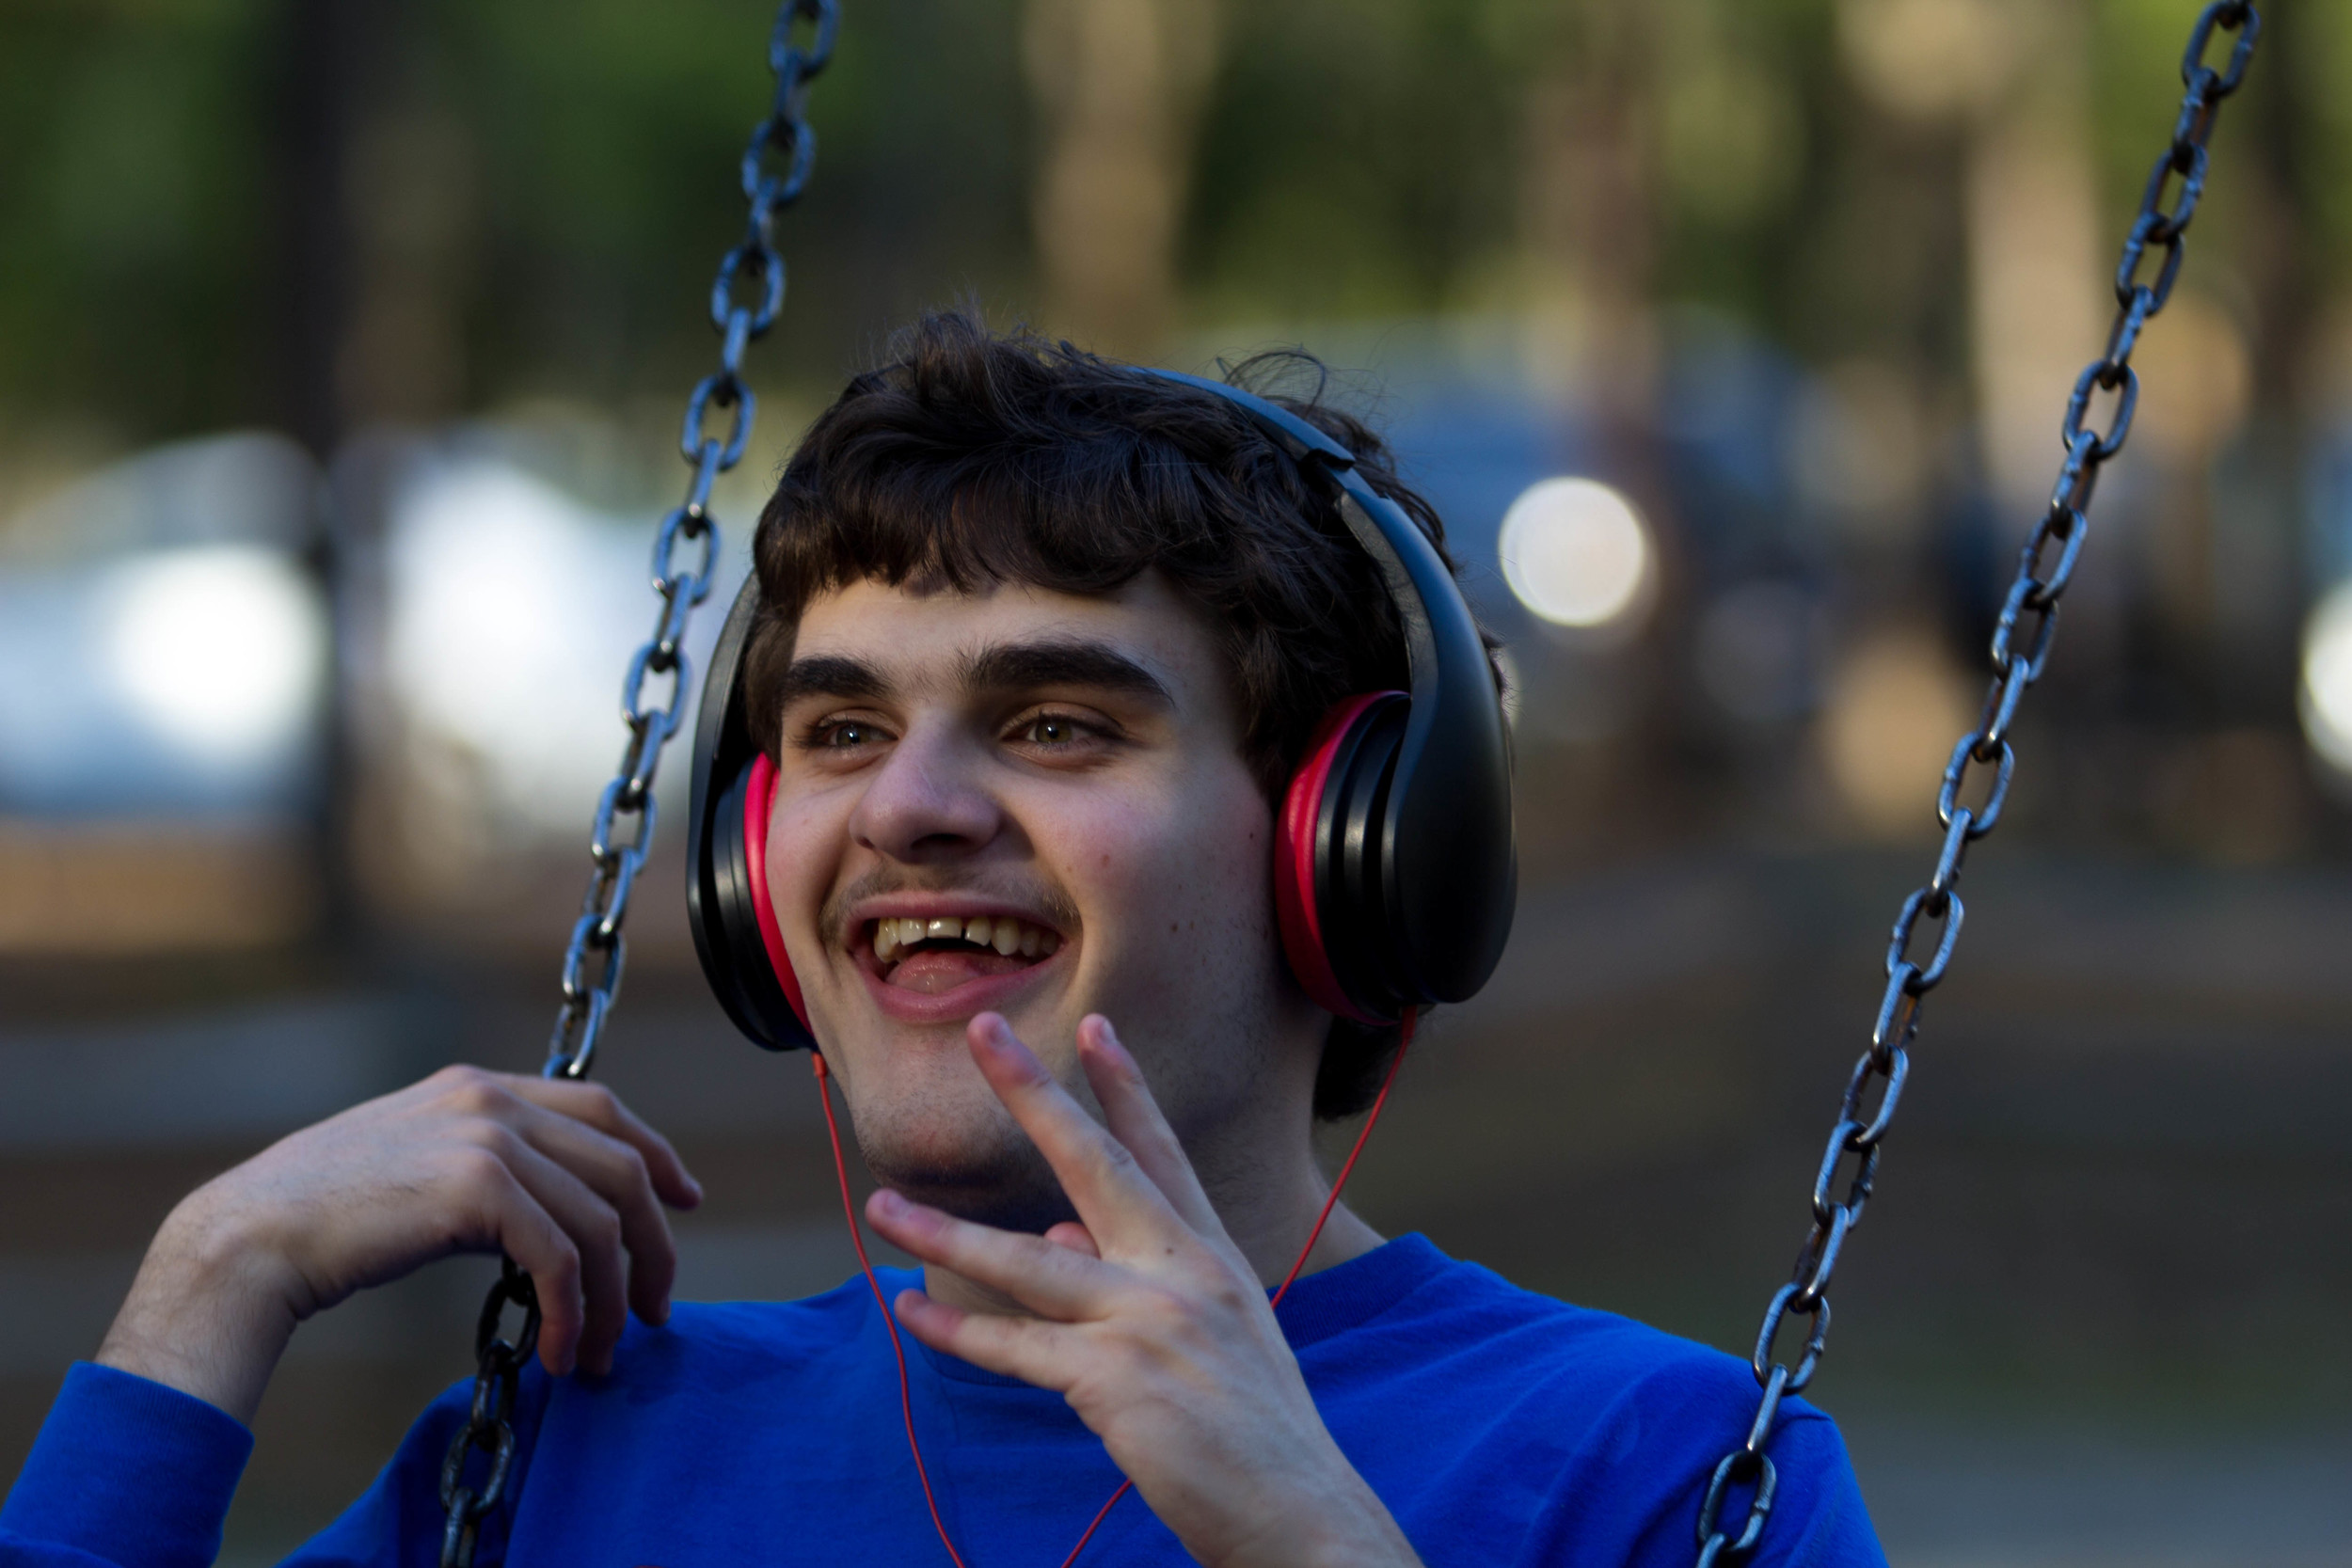 """""""I know Zack will never live alone,"""" Vicki said. """"He will either be always living with us or if he lives in a home away from us, it will be a group home. I would rather him live with us. He's my son.""""  Zack listens to children's songs while swinging at the neighborhood park."""